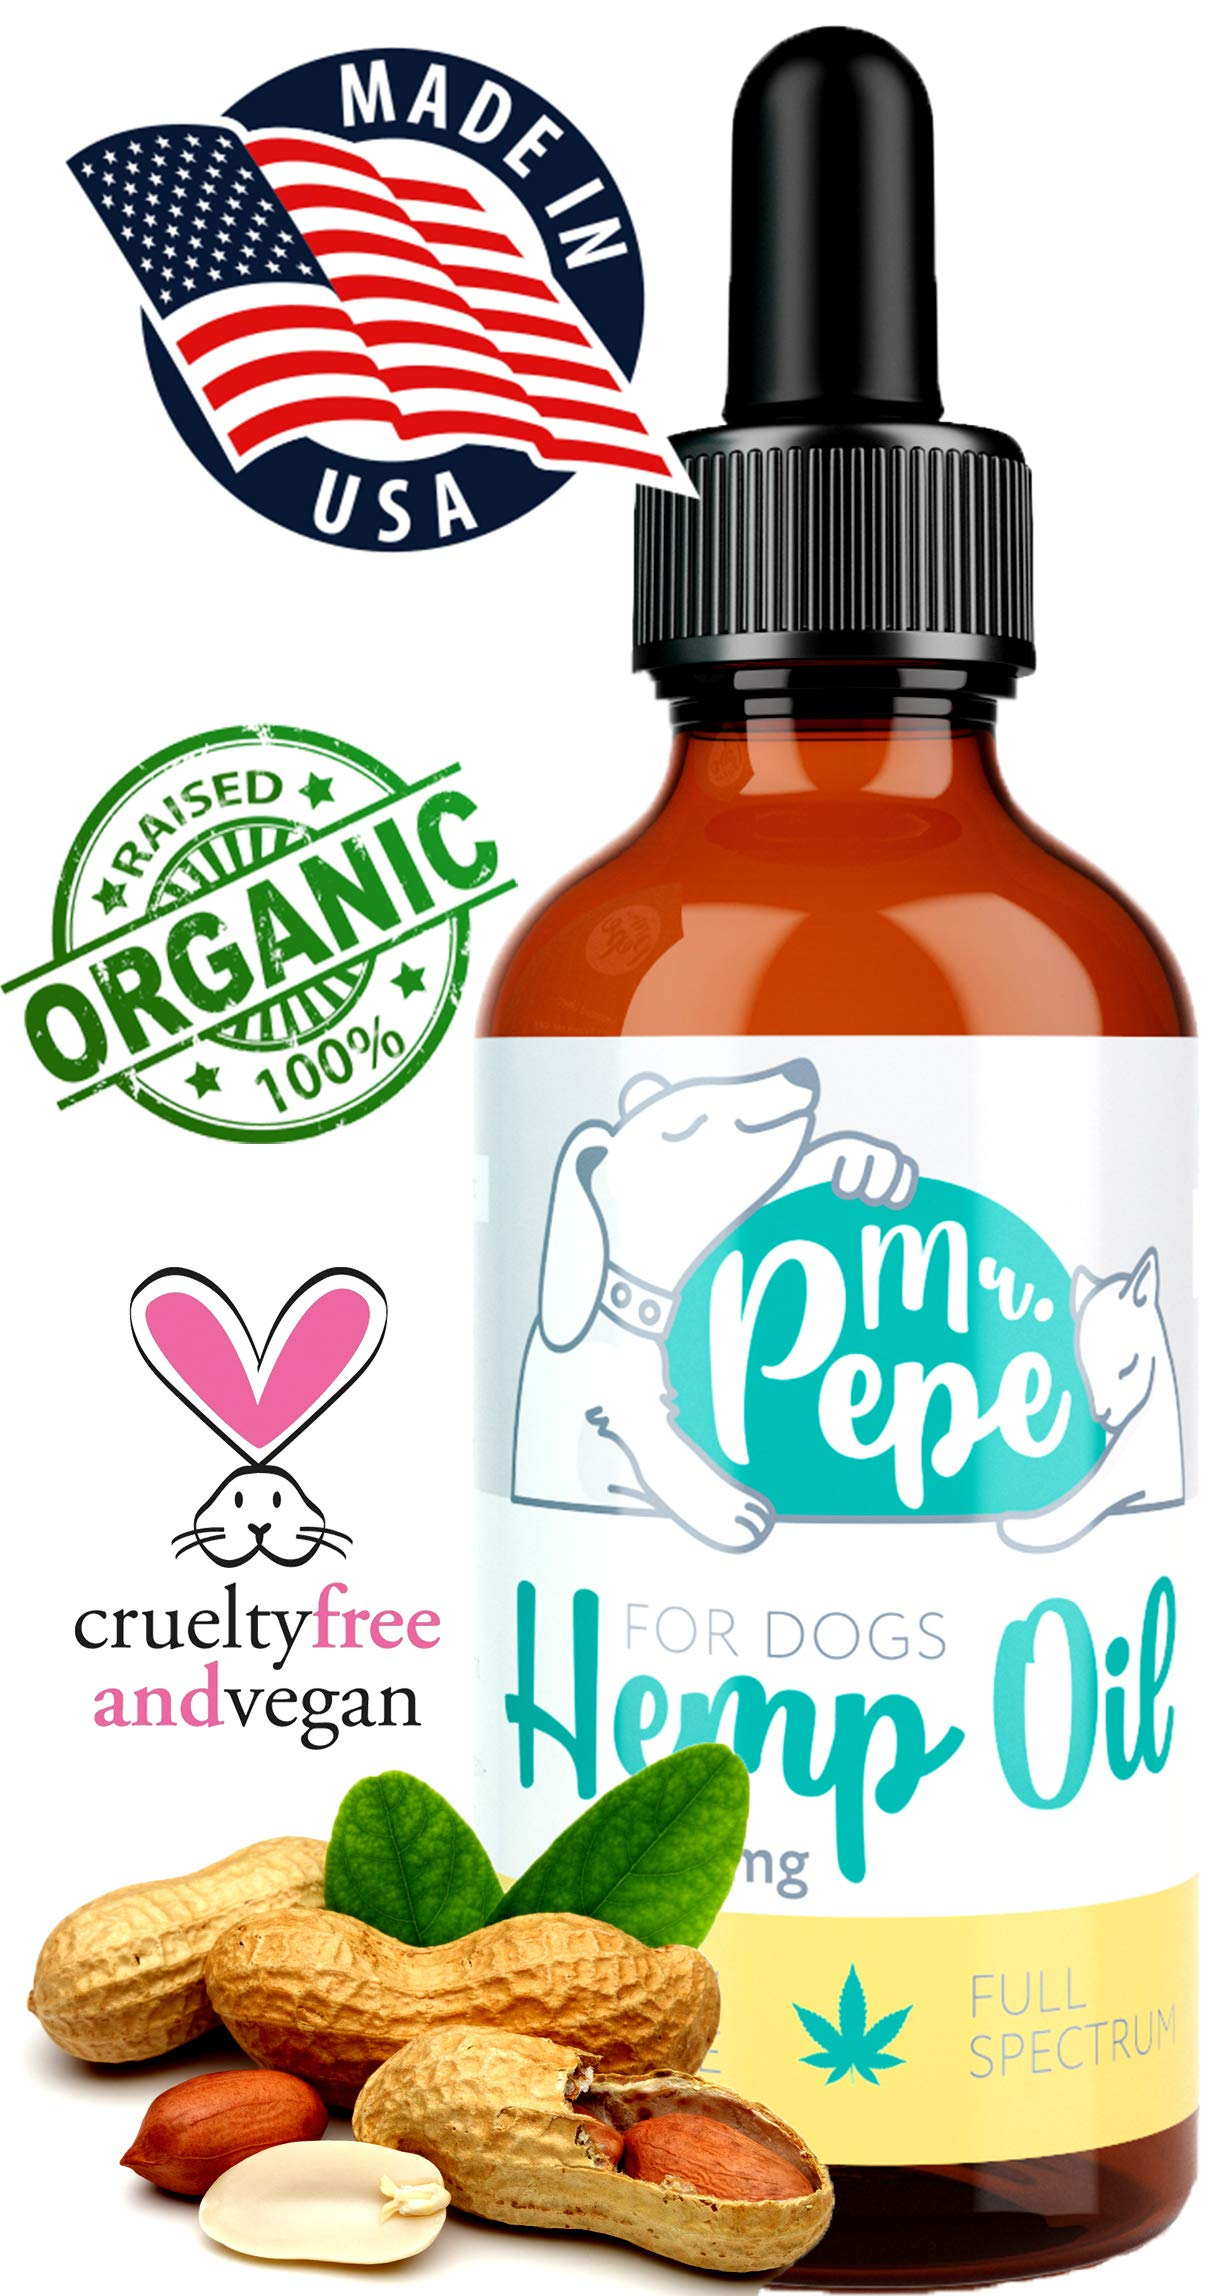 Mr. PePe Full Spectrum Hemp Oil for Dogs & Cats Peanut Butter Flavor 250mg - Organic Pain Relief, Stress & Anxiety Support, Calming Treats, Hip and Joint Health - high in Omega 3,6,9 - Made in USA by Mr. PePe